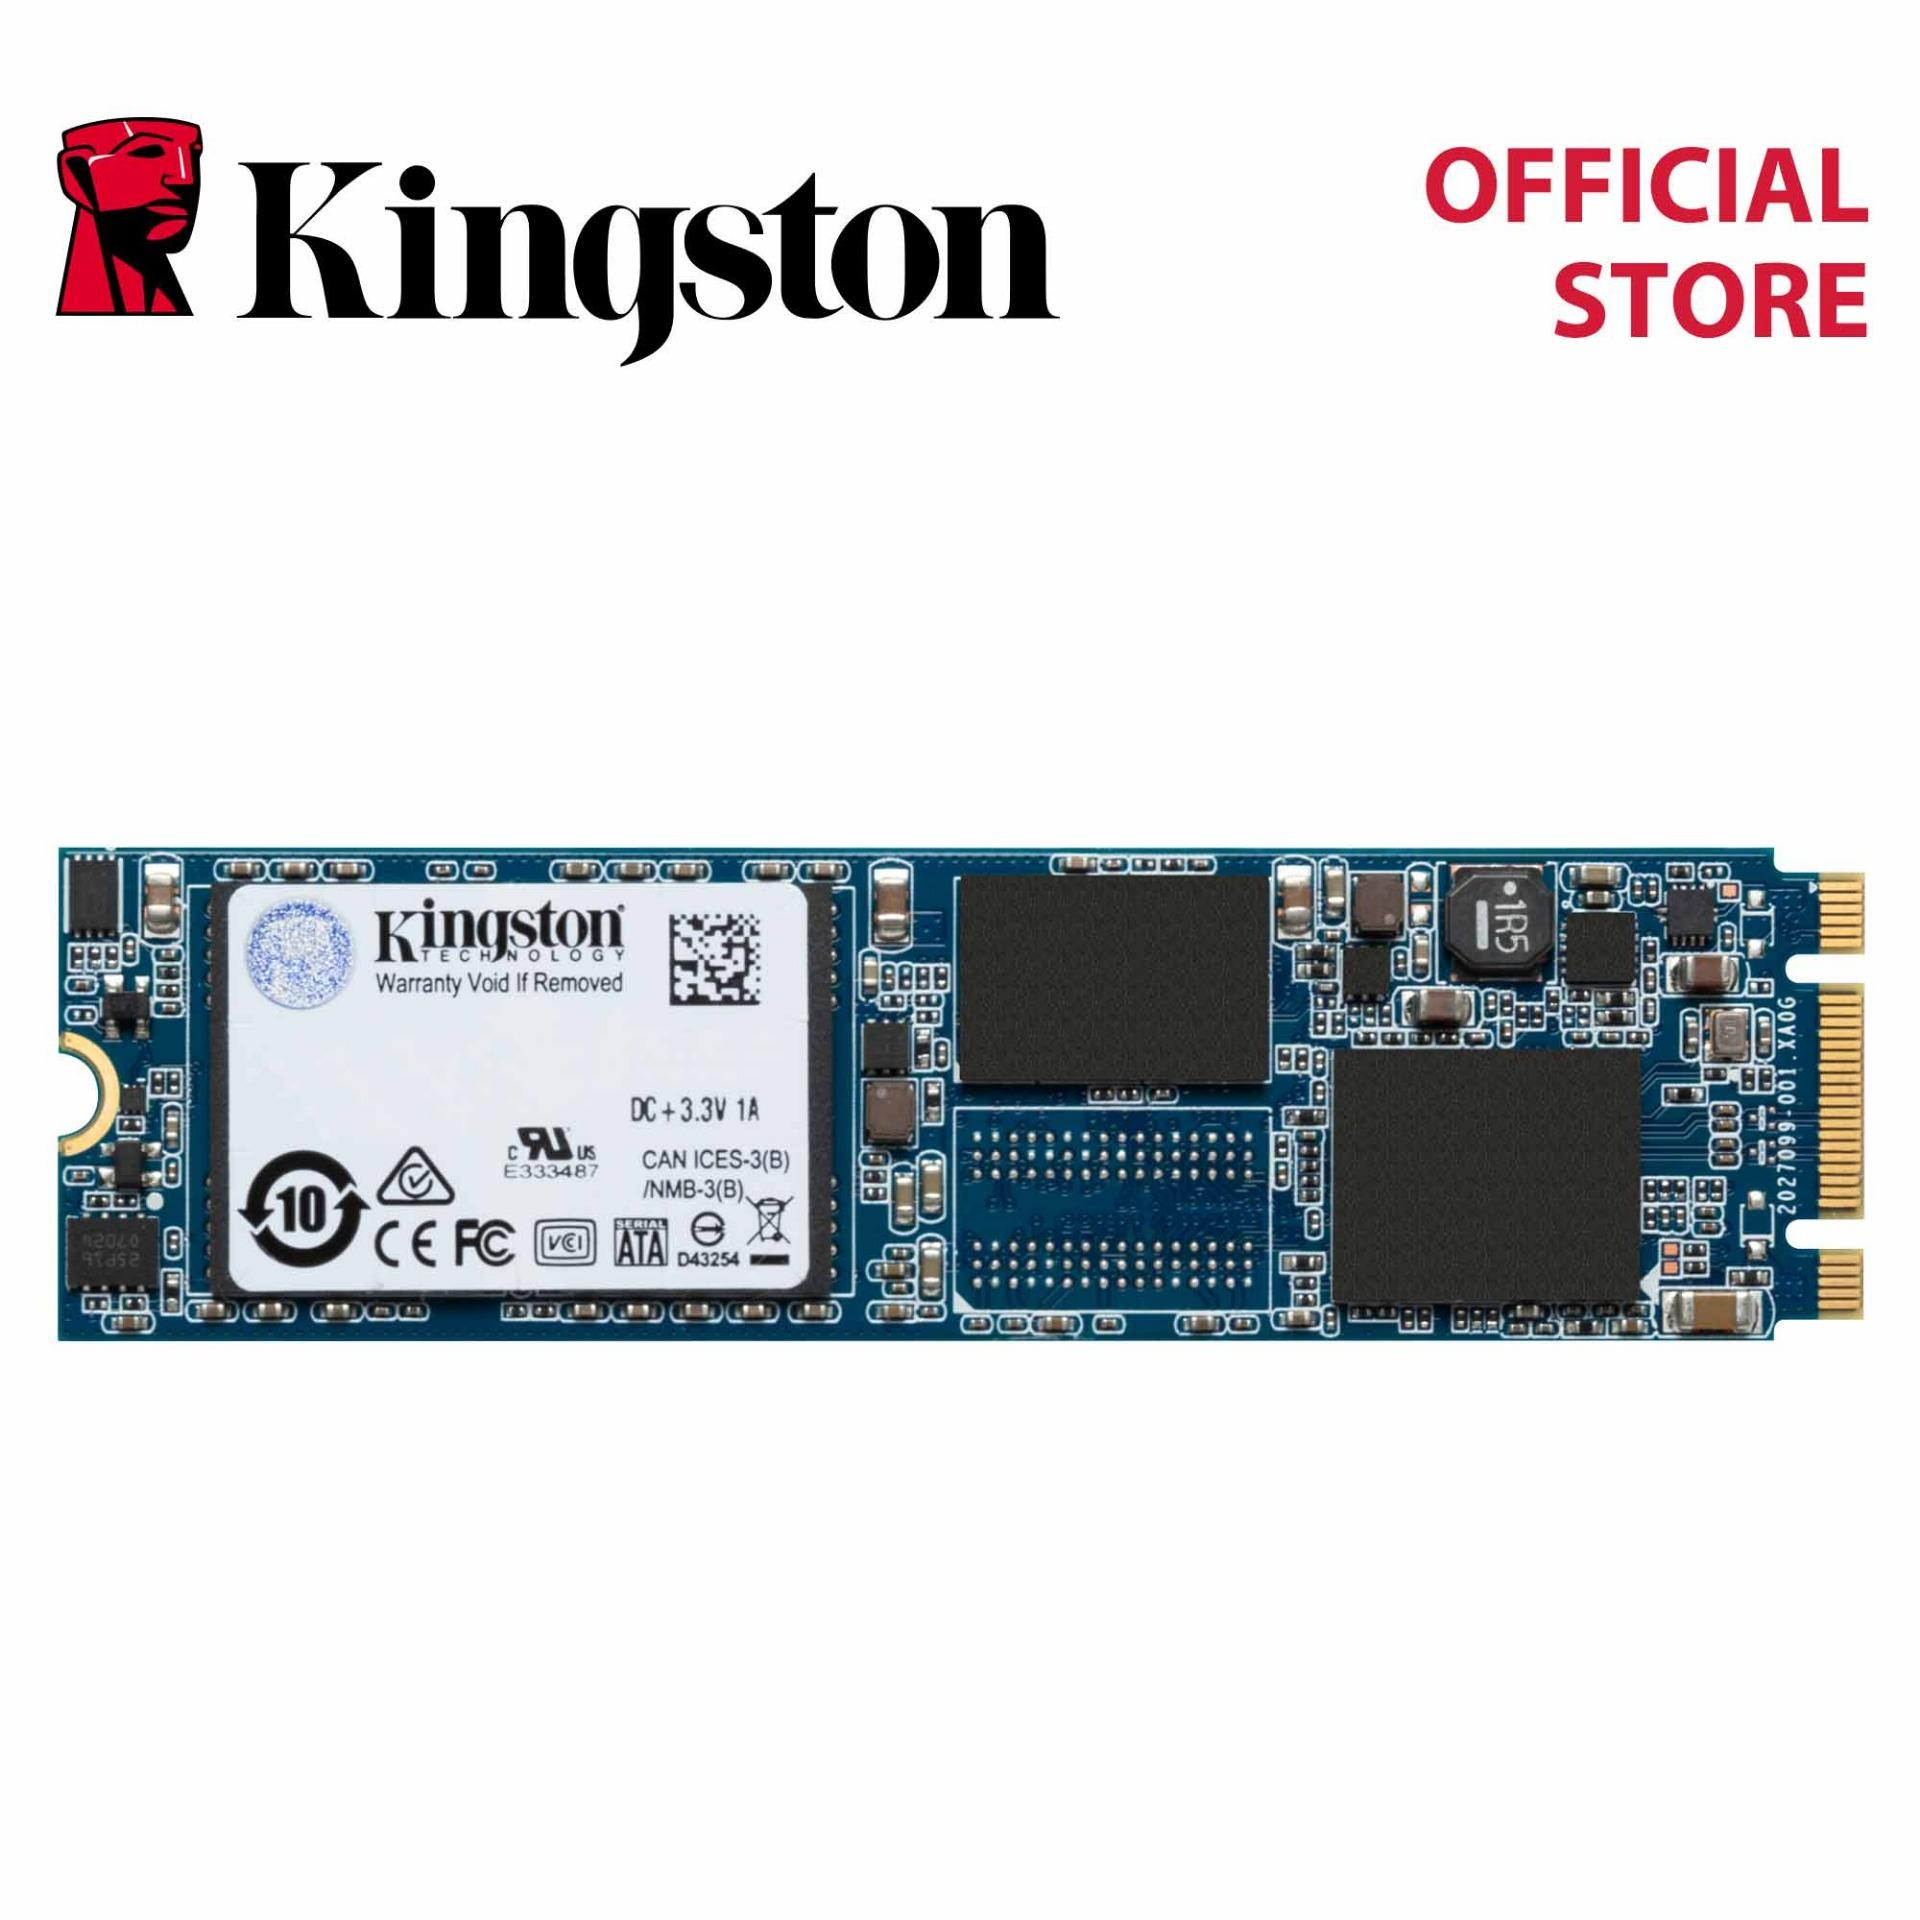 Kingston Uv500 Sata Iii M2 Ssd Capacity 120gb 240gb 480gb 2280